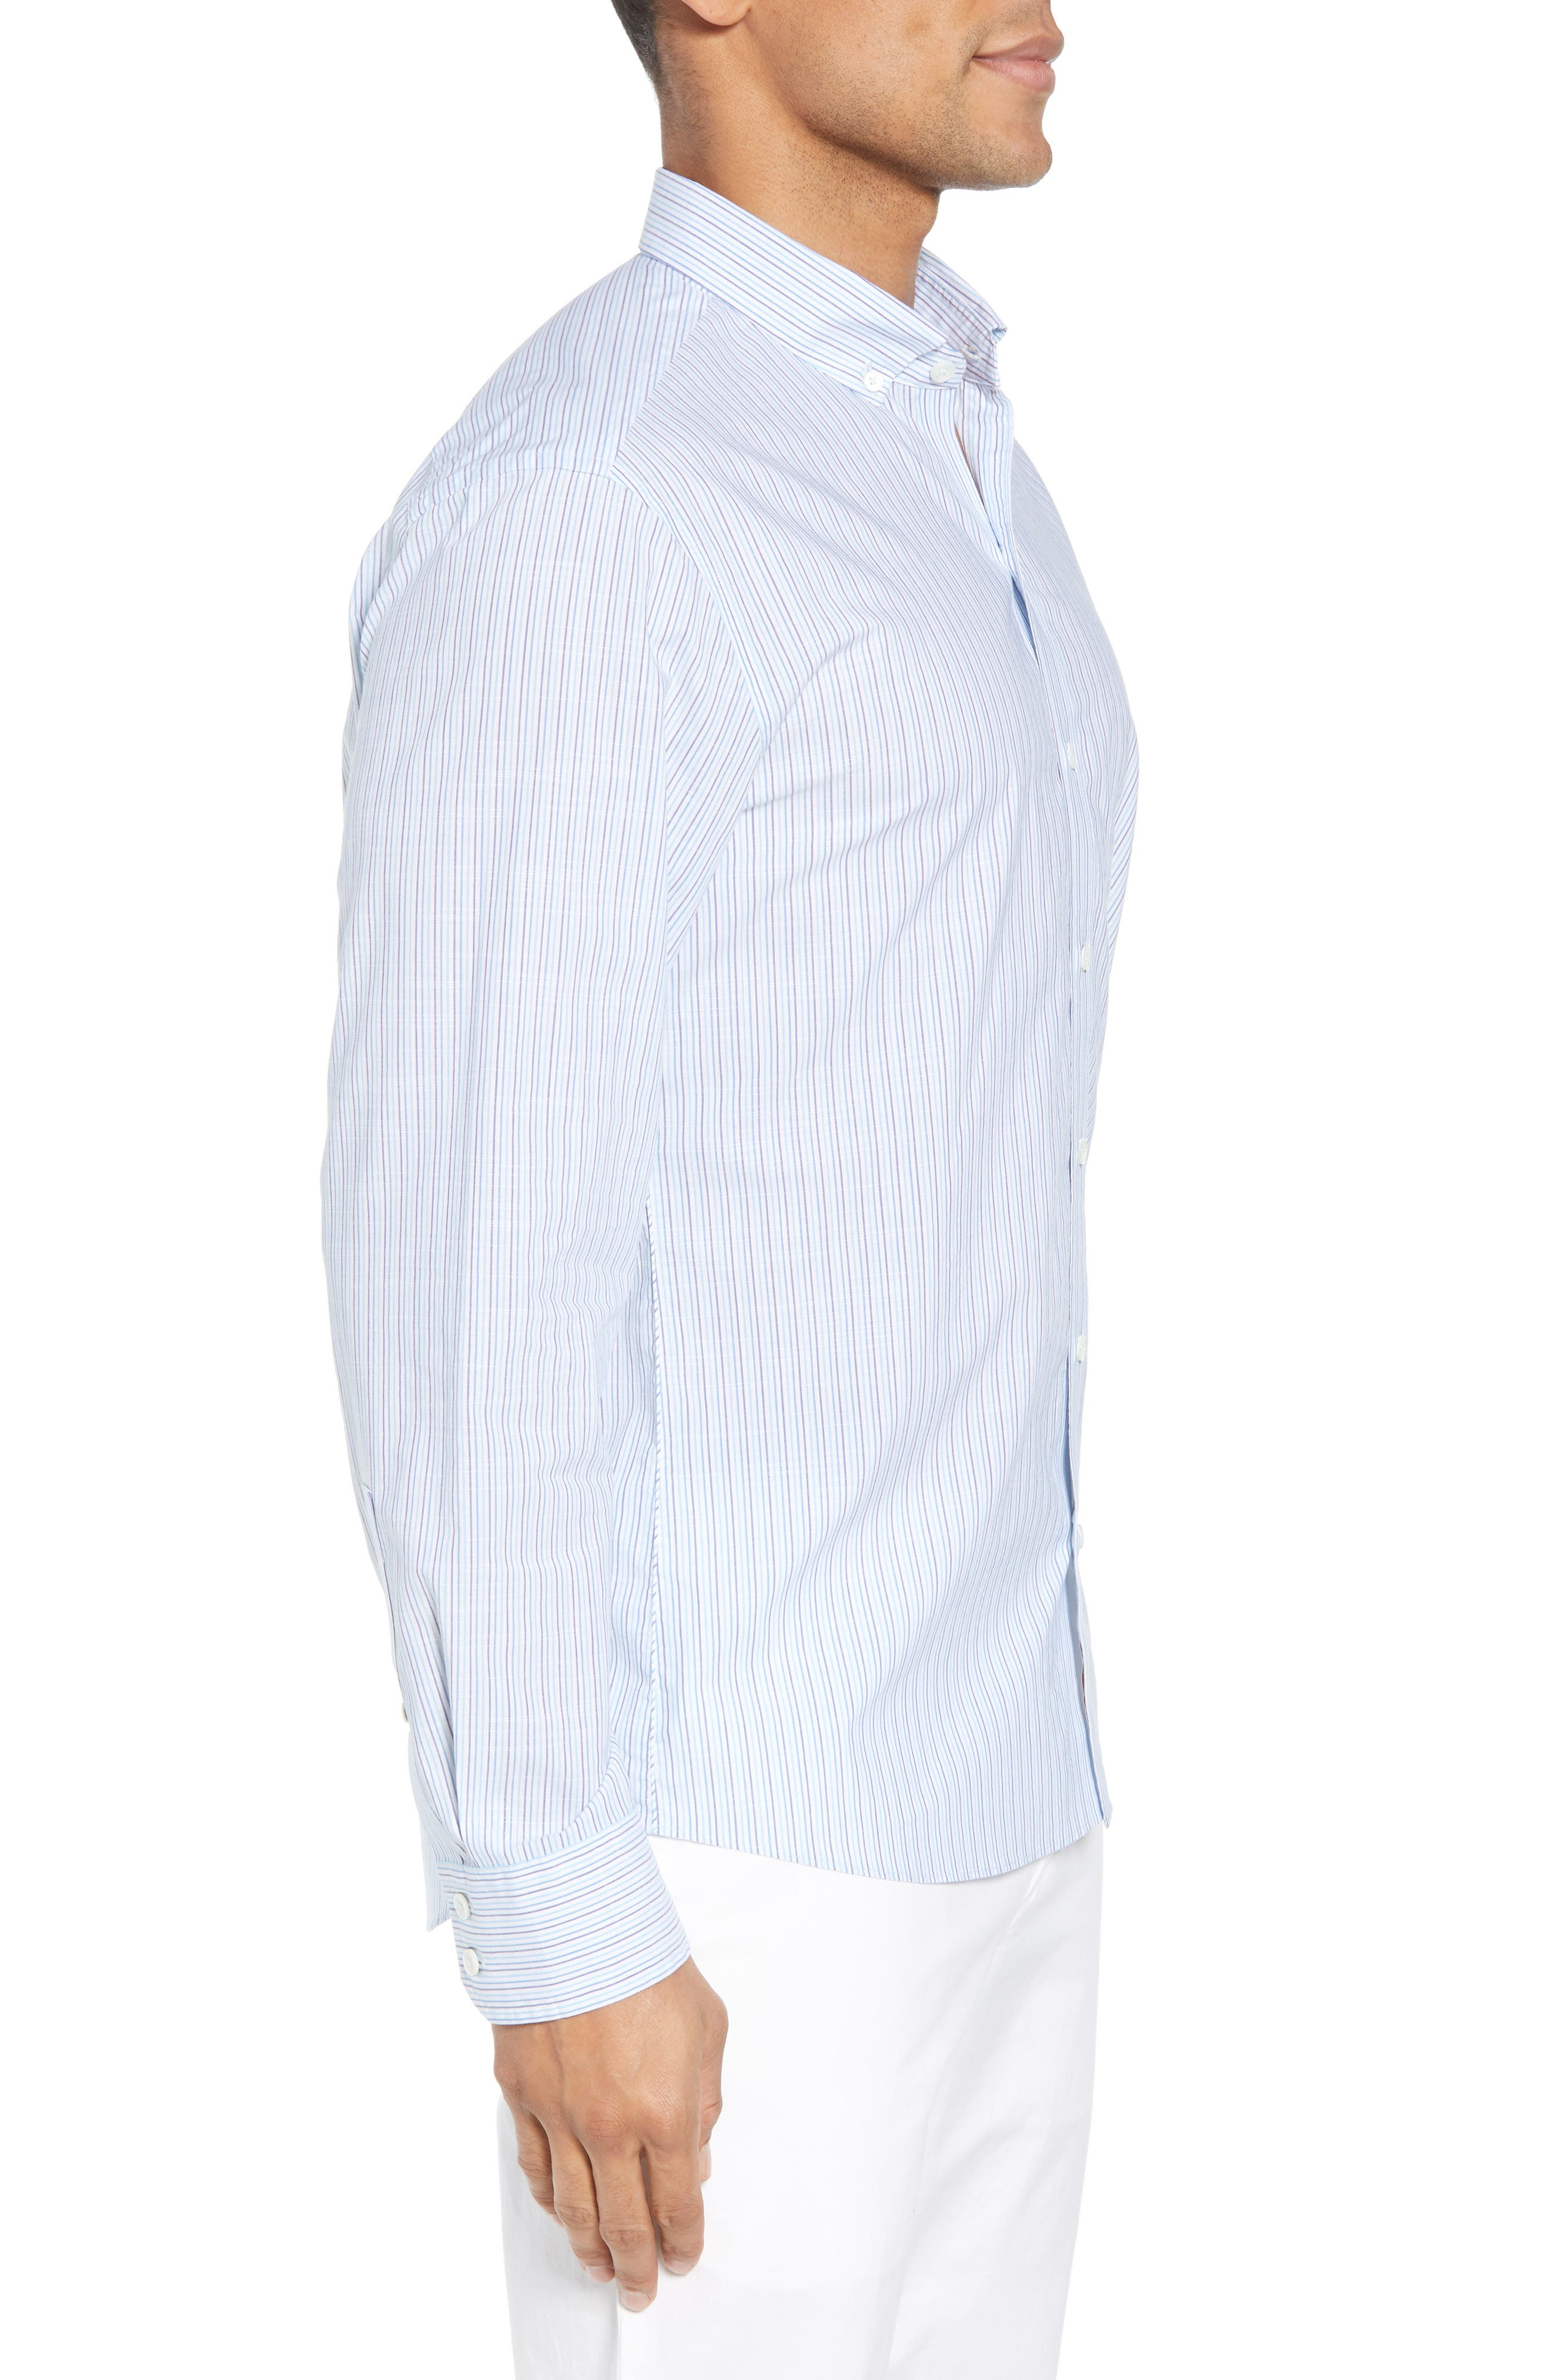 Skeeter Stripe Sport Shirt,                             Alternate thumbnail 4, color,                             Aqua